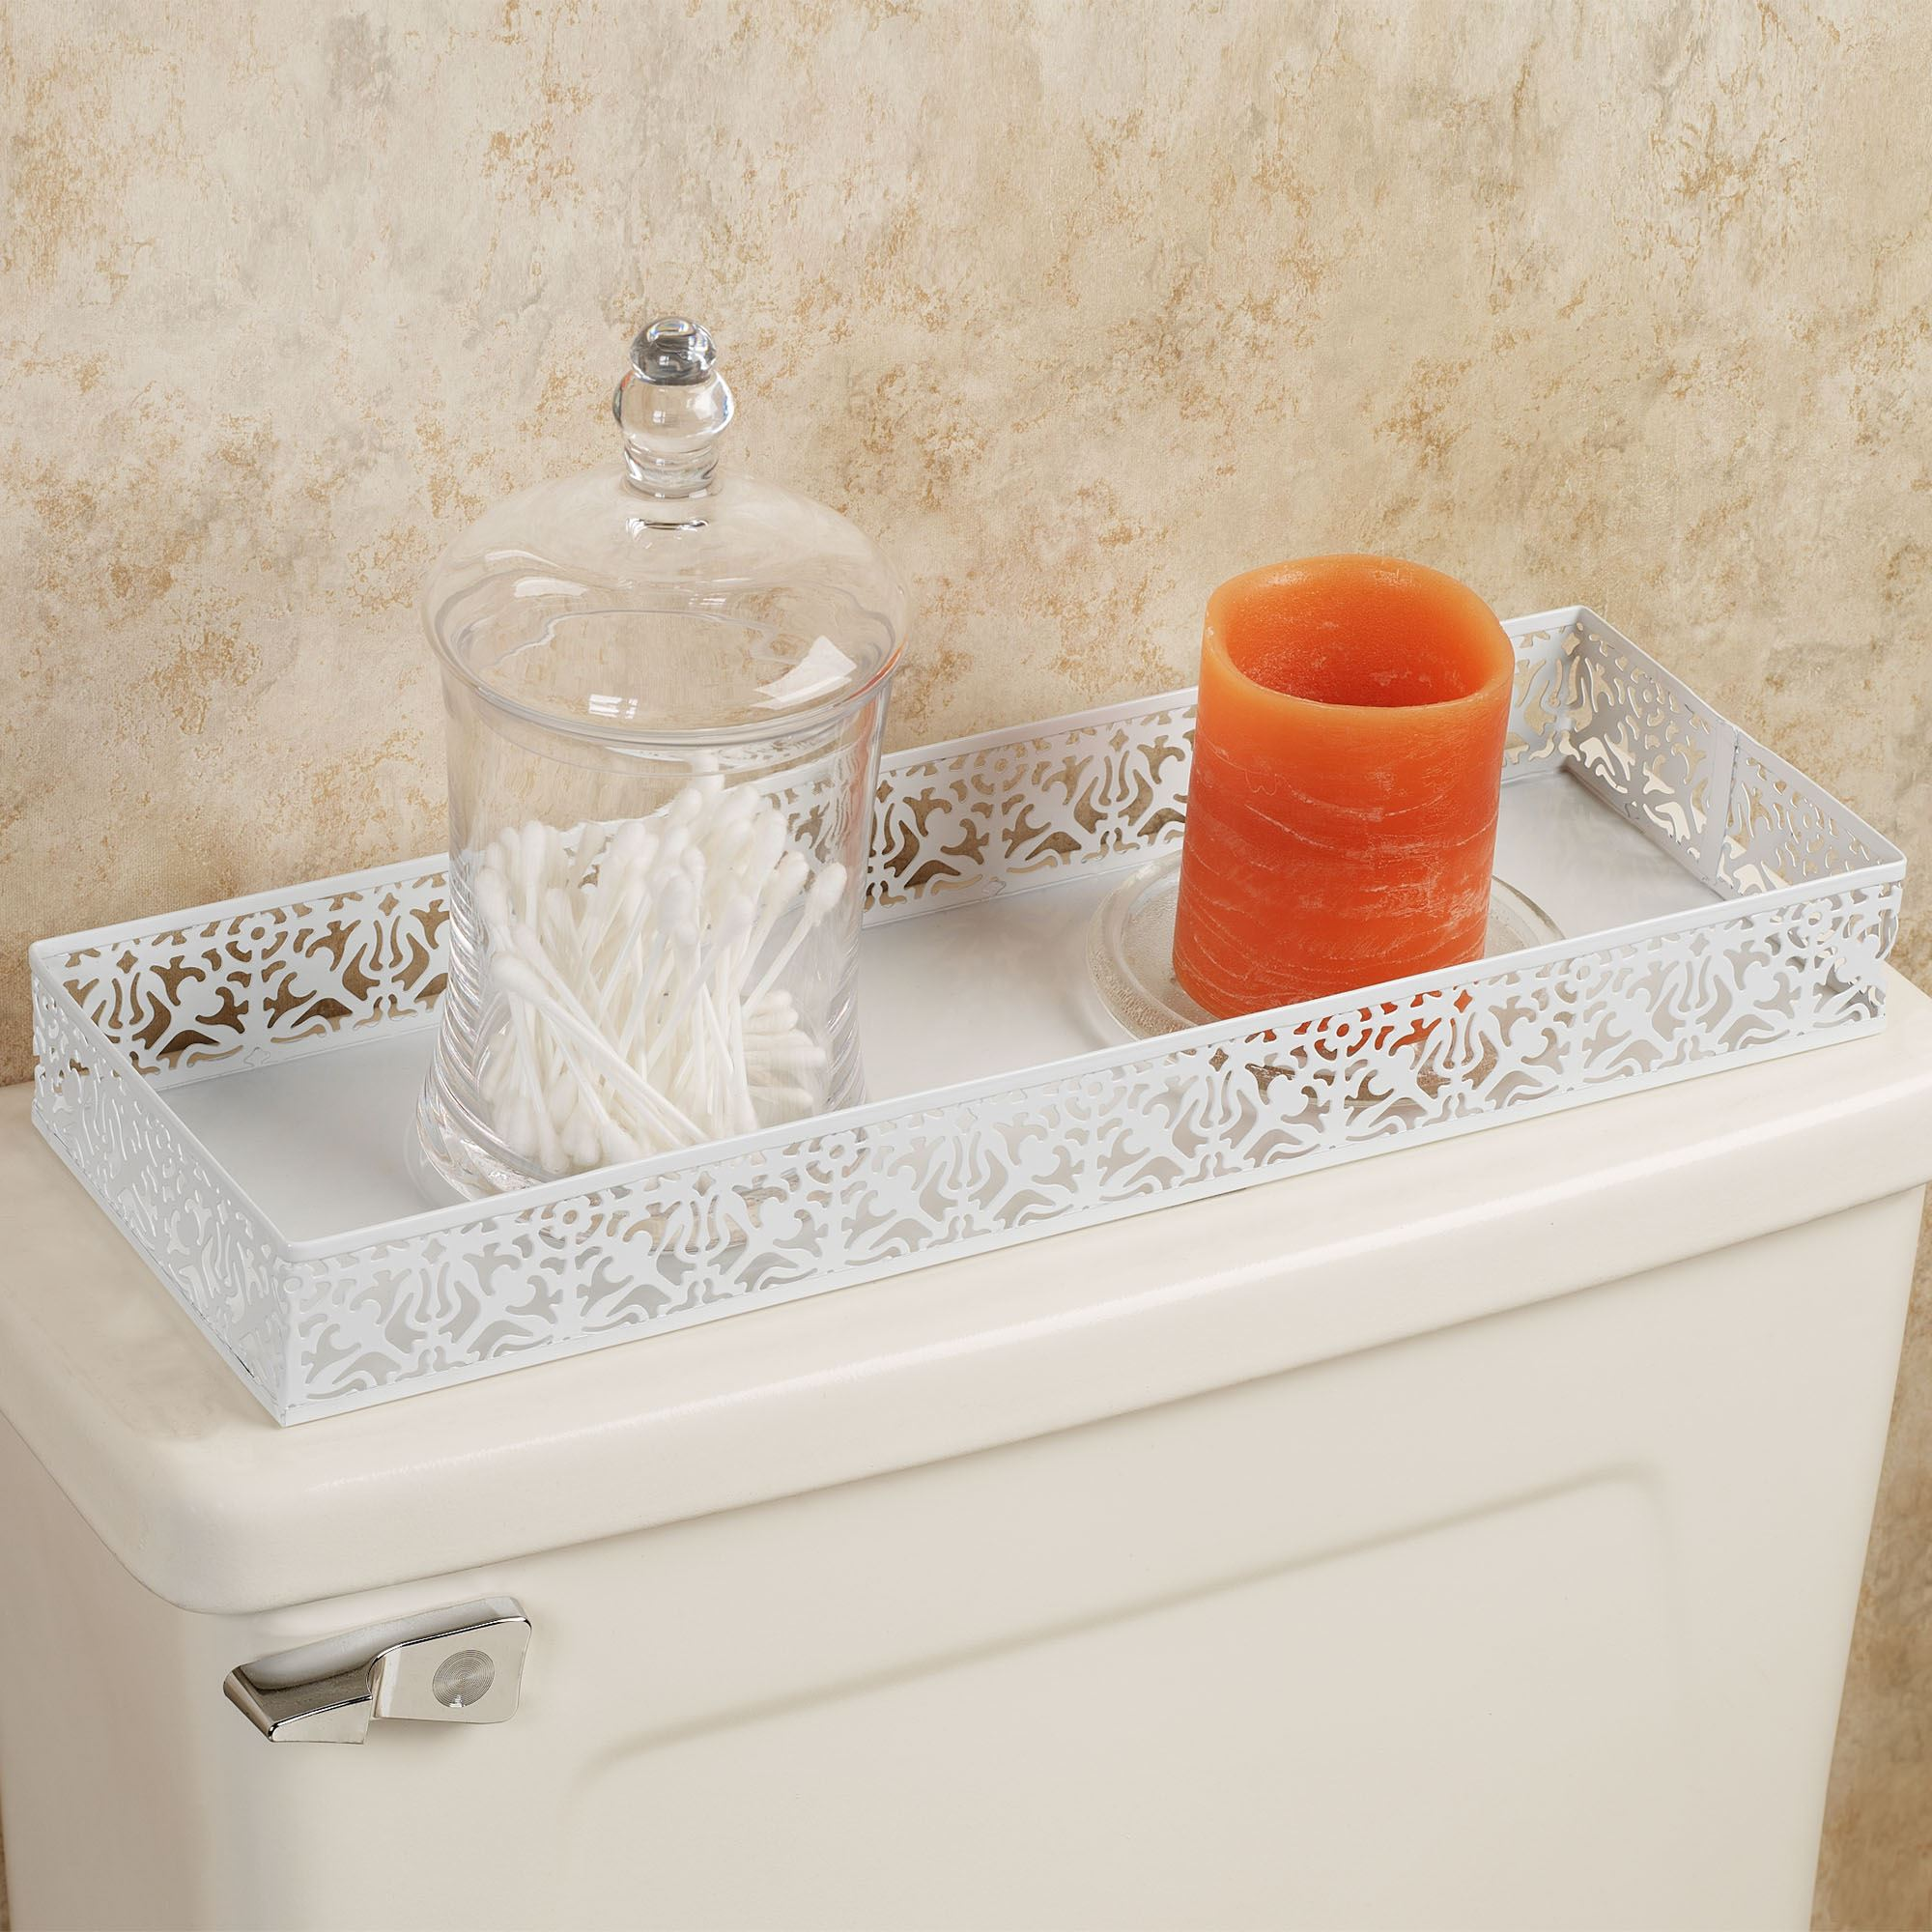 Lace Design Metal Toilet Tank Top Tray